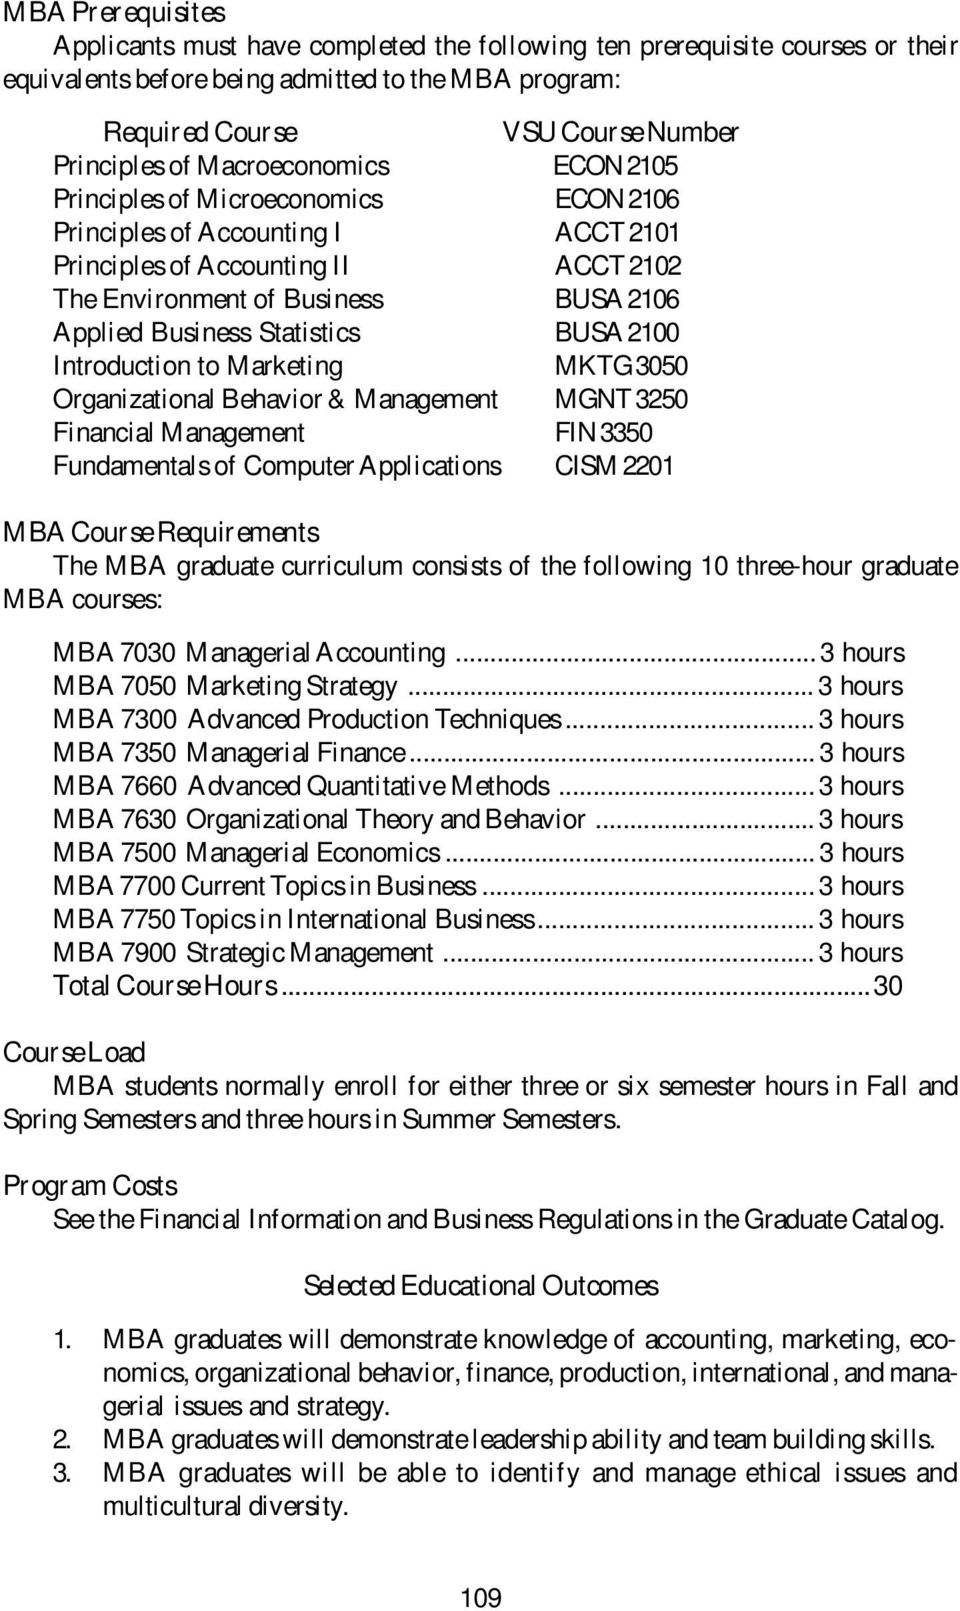 Statistics BUSA 2100 Introduction to Marketing MKTG 3050 Organizational Behavior & Management MGNT 3250 Financial Management FIN 3350 Fundamentals of Computer Applications CISM 2201 MBA Course